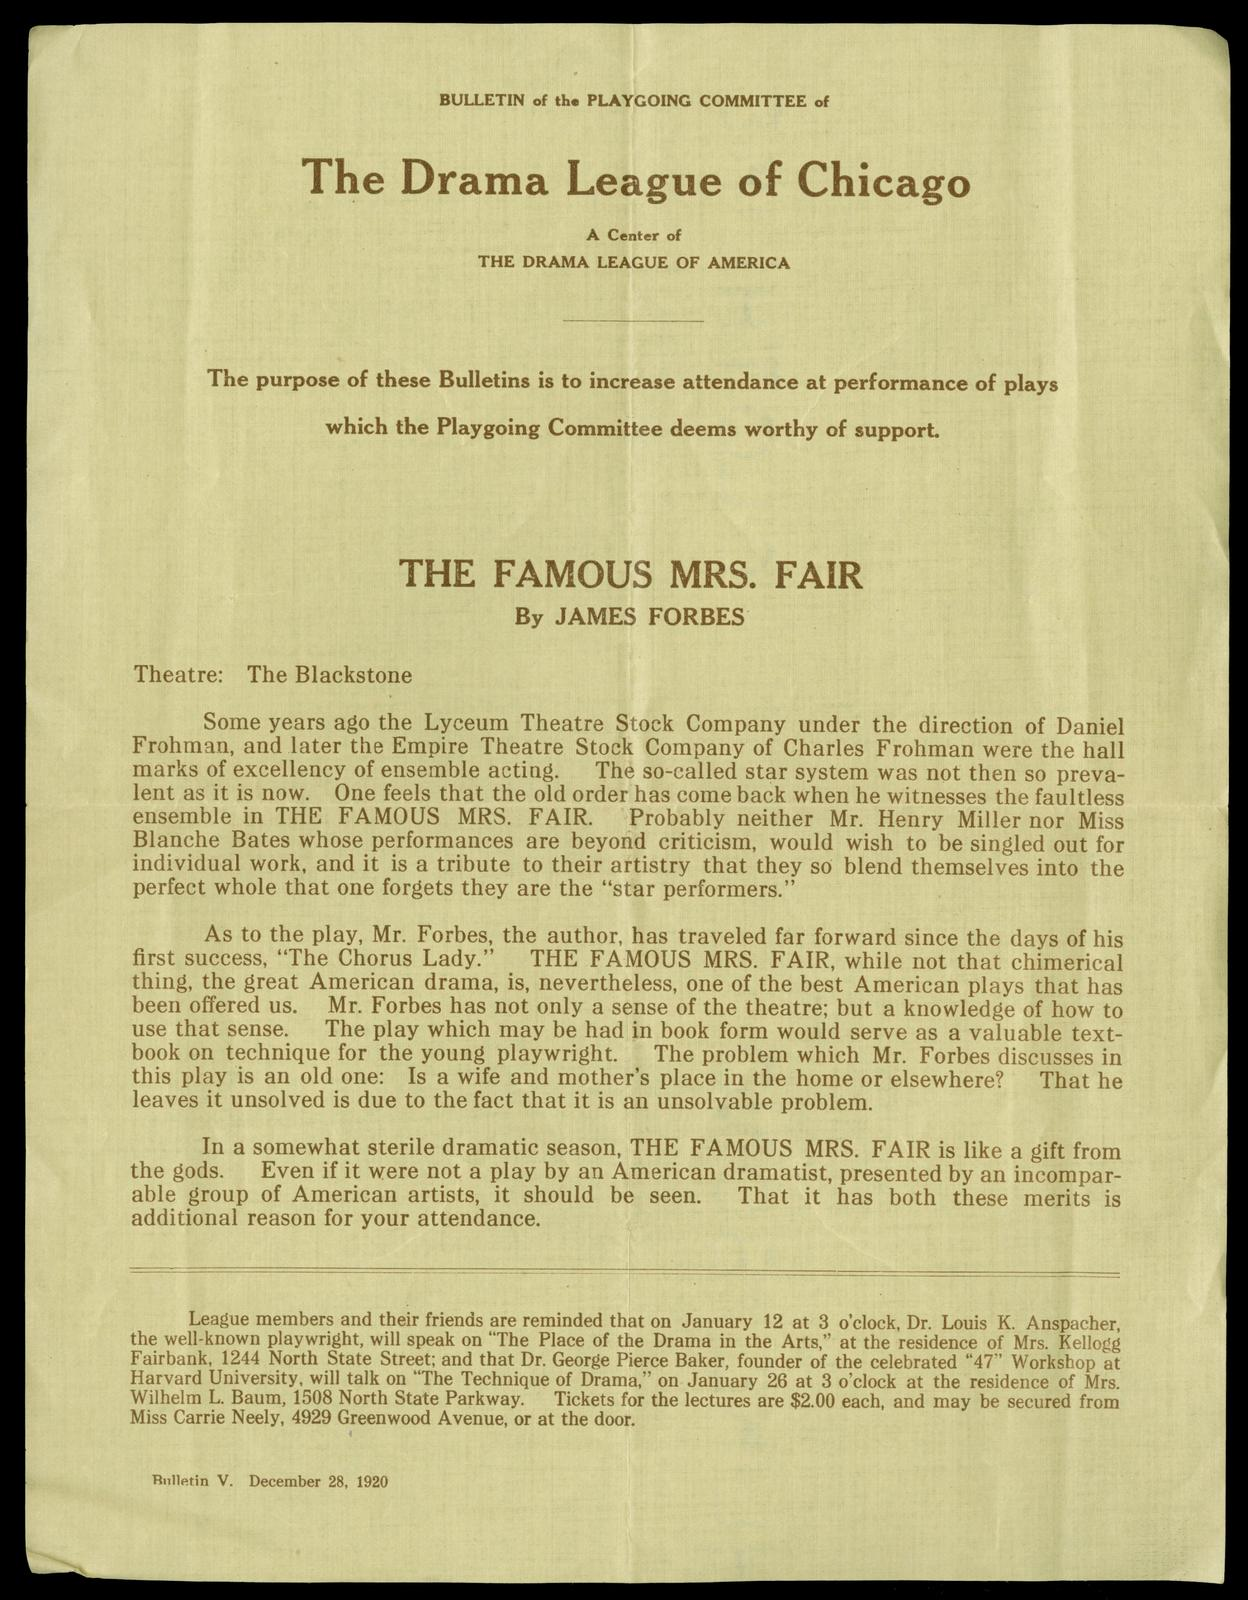 Bulletin of the Playgoing Commettee of The Drama League of Chicago